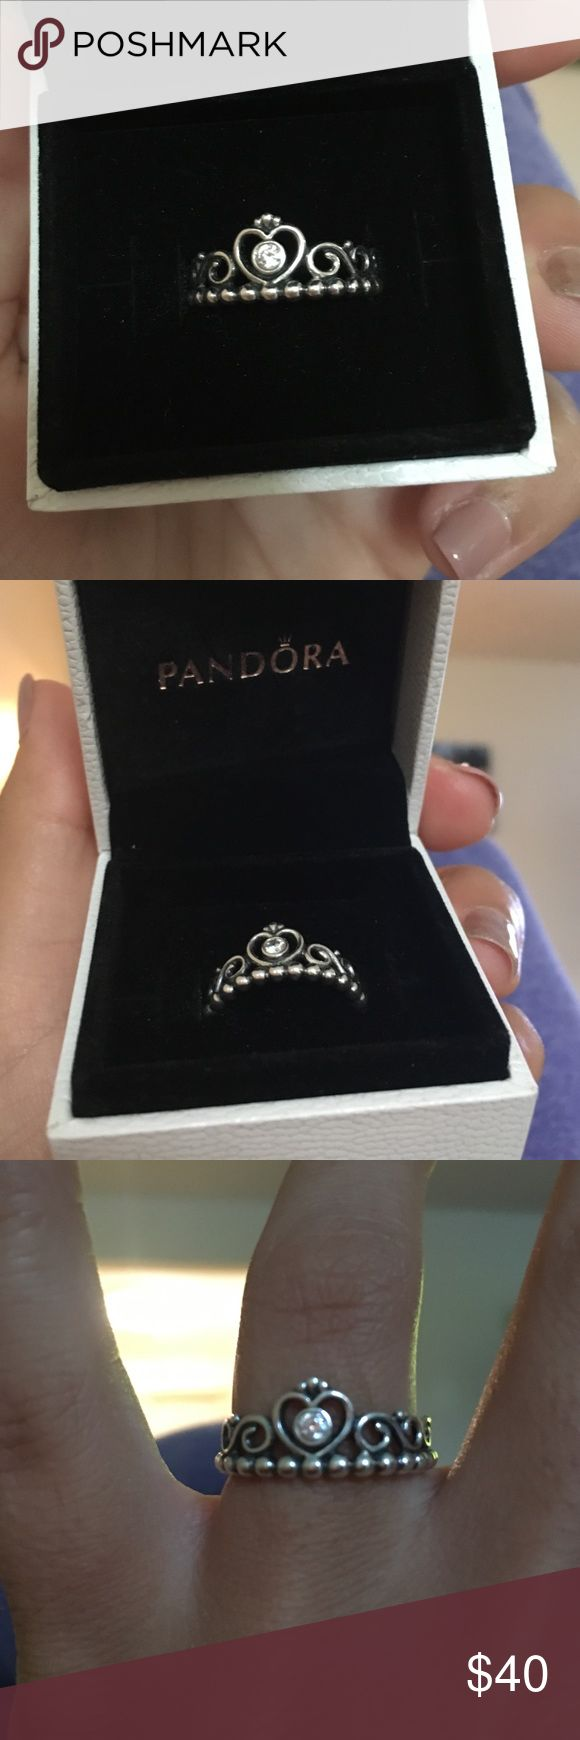 25 beste idee 235 n pandora princess ring price op